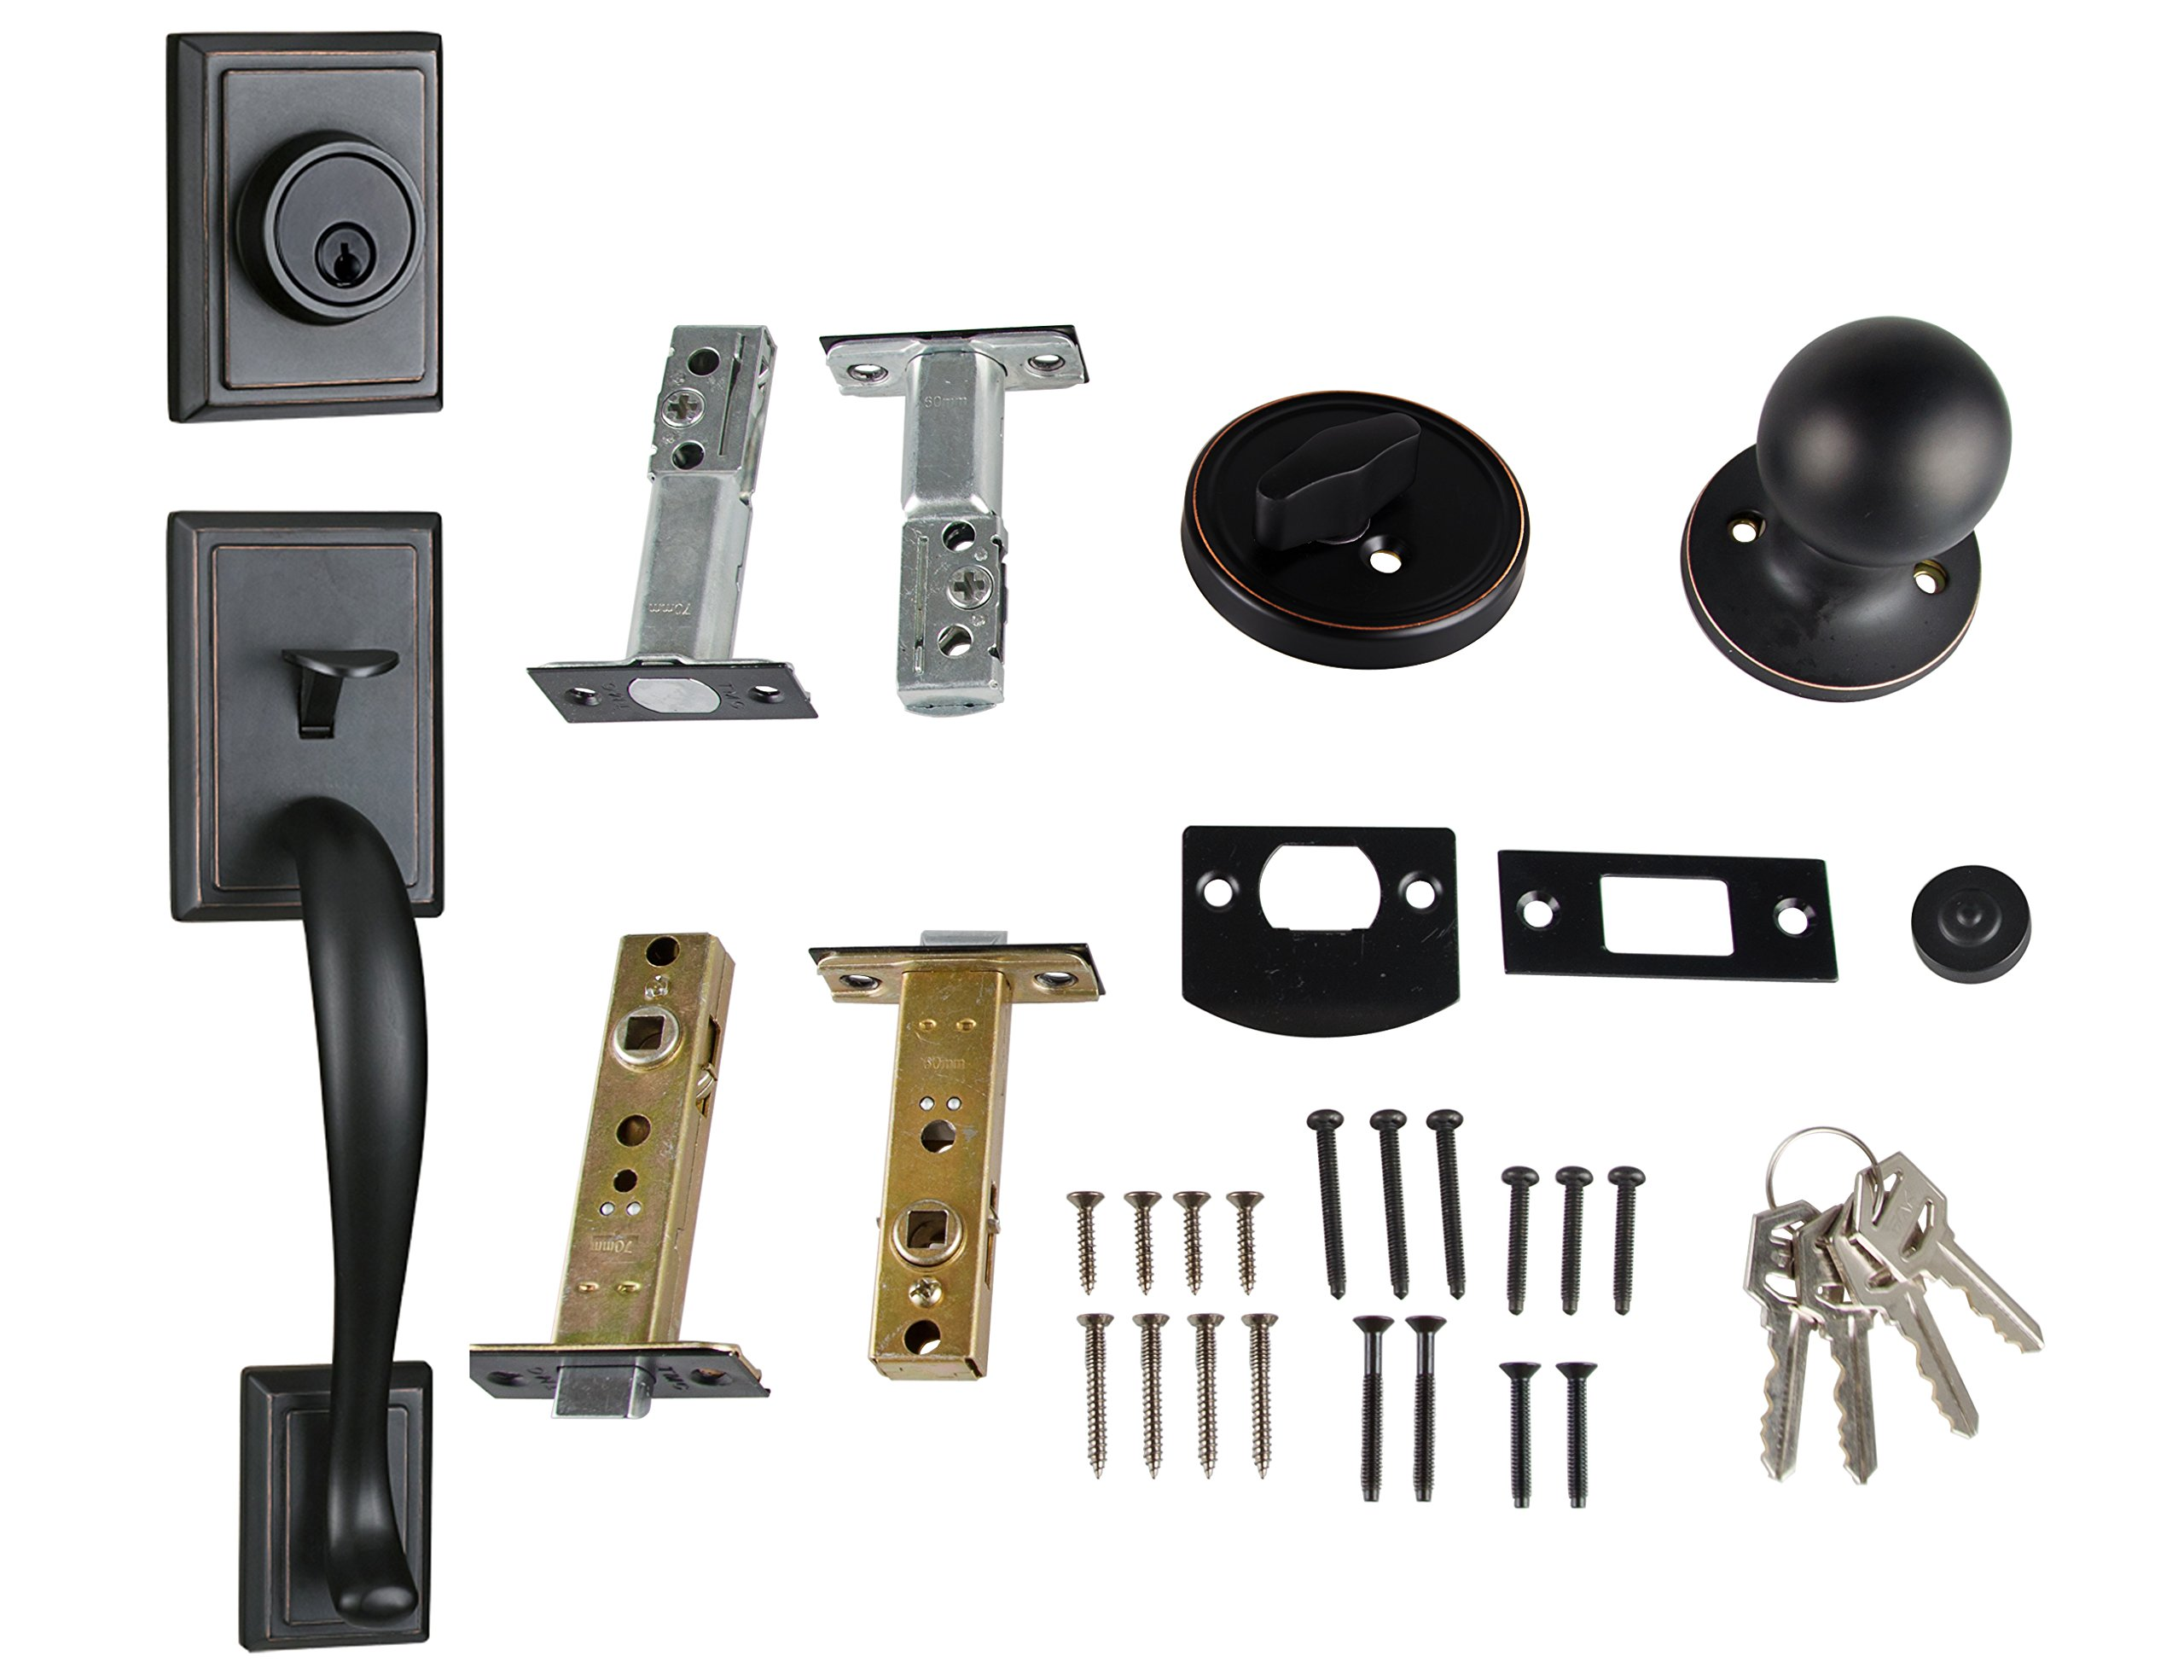 Entry Deadbolt and Handle Single Cylinder Handleset with Knob Handle for Back Entrance and Front Door Reversible for Right and Left Handed Oil Rubbed Bronze Finish, MDHST201310B-AMZ-2 by TMC (Image #7)